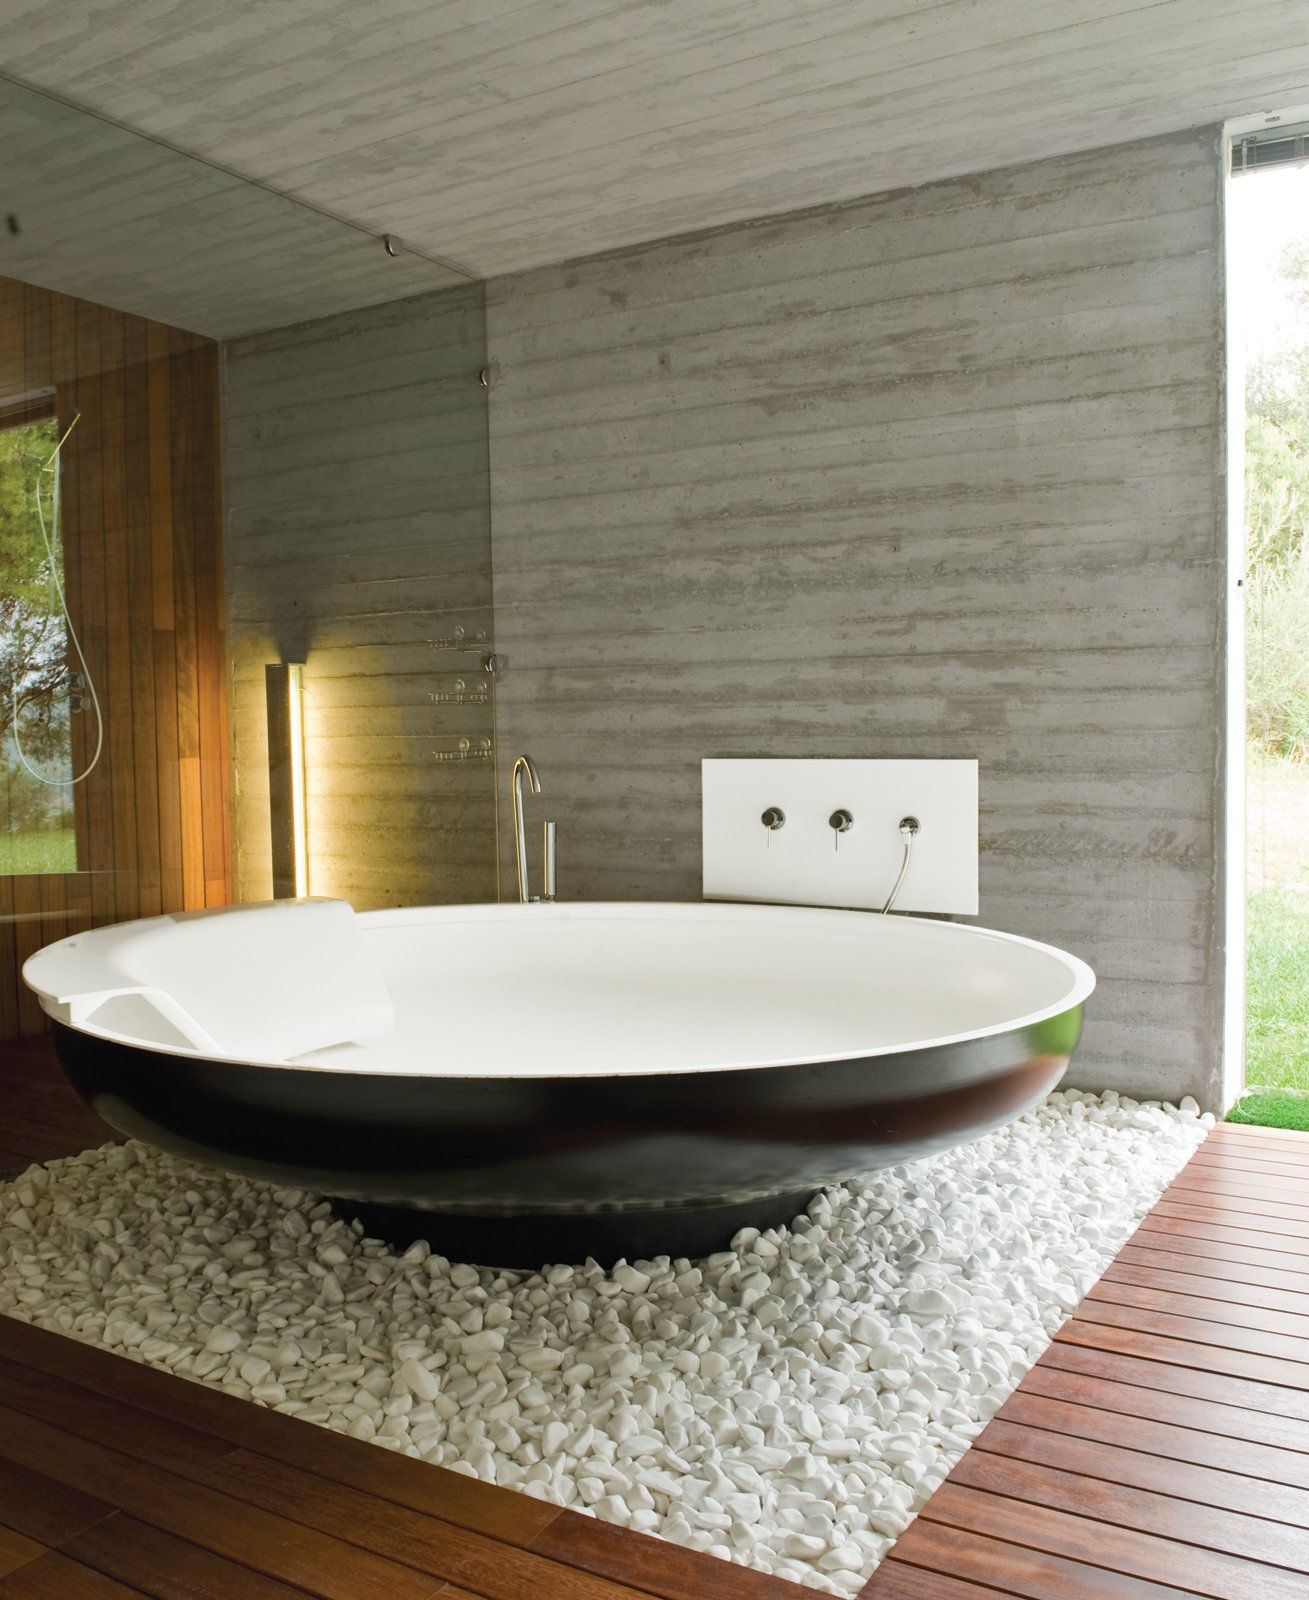 A UFO bathtub by Benedini Associati for Agape lends an alien touch to one of the master bathrooms.